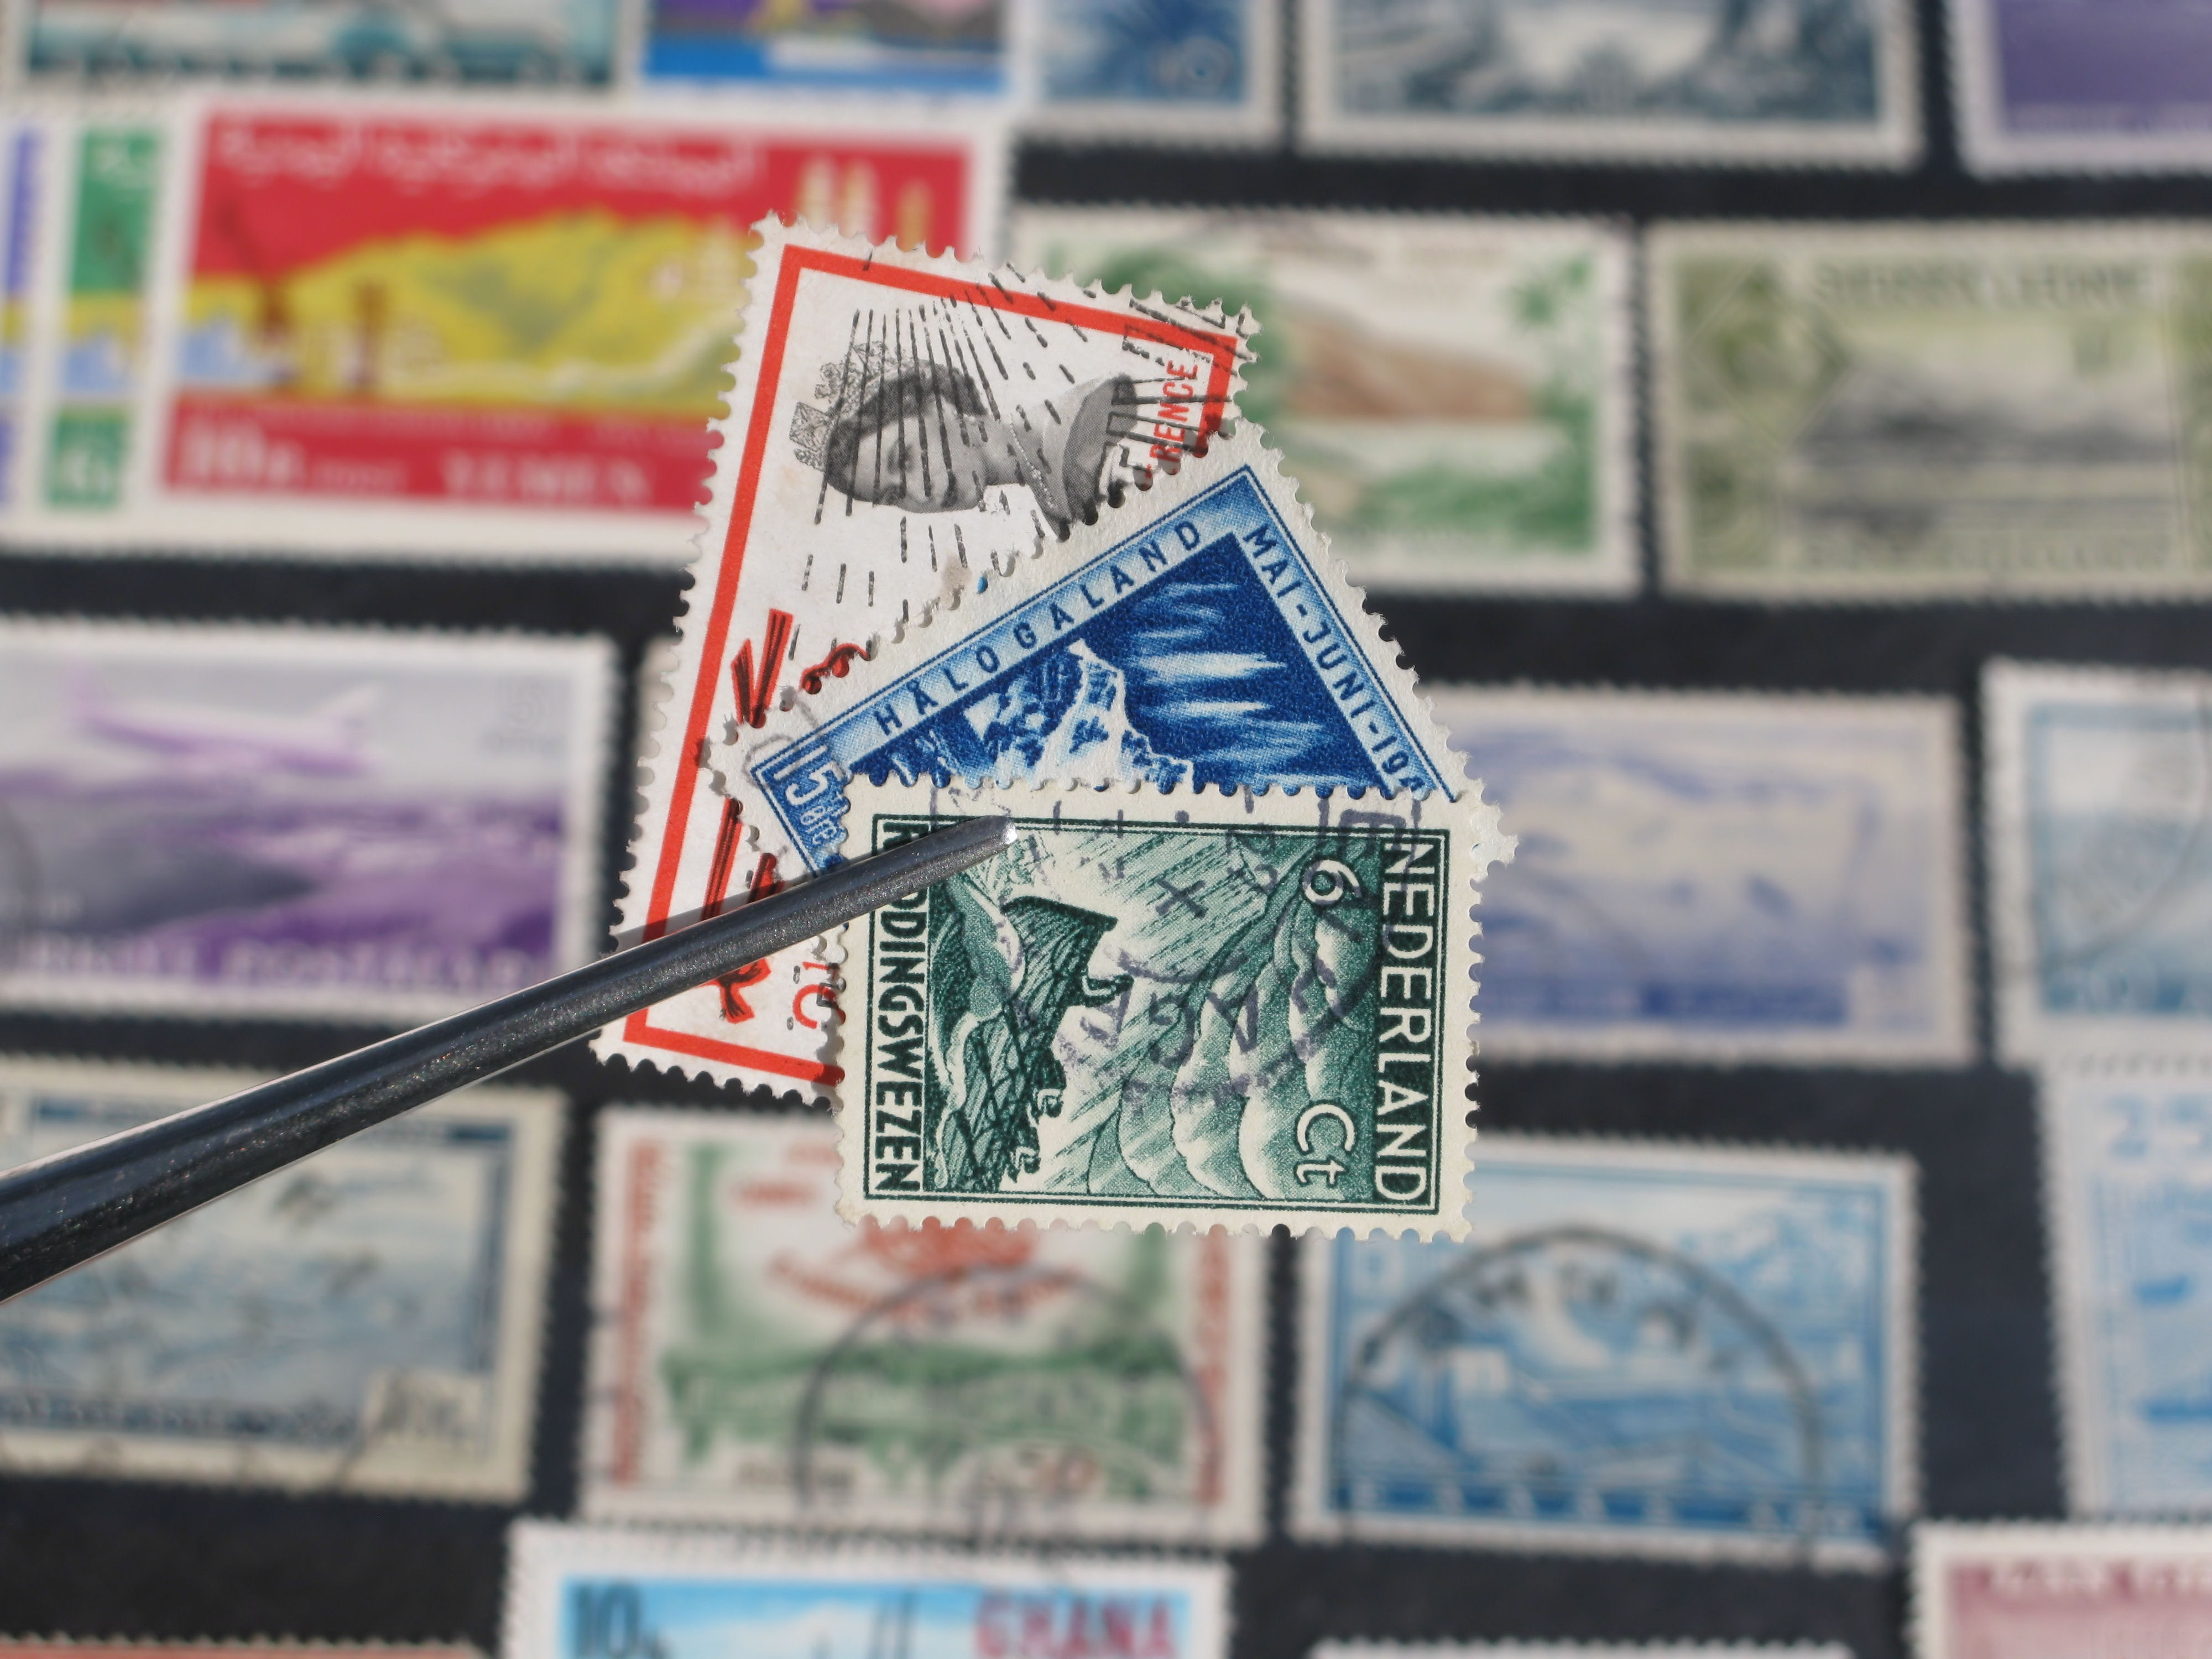 Stamp Collecting – Get Started with the Classic Hobby | Hobbies and ...